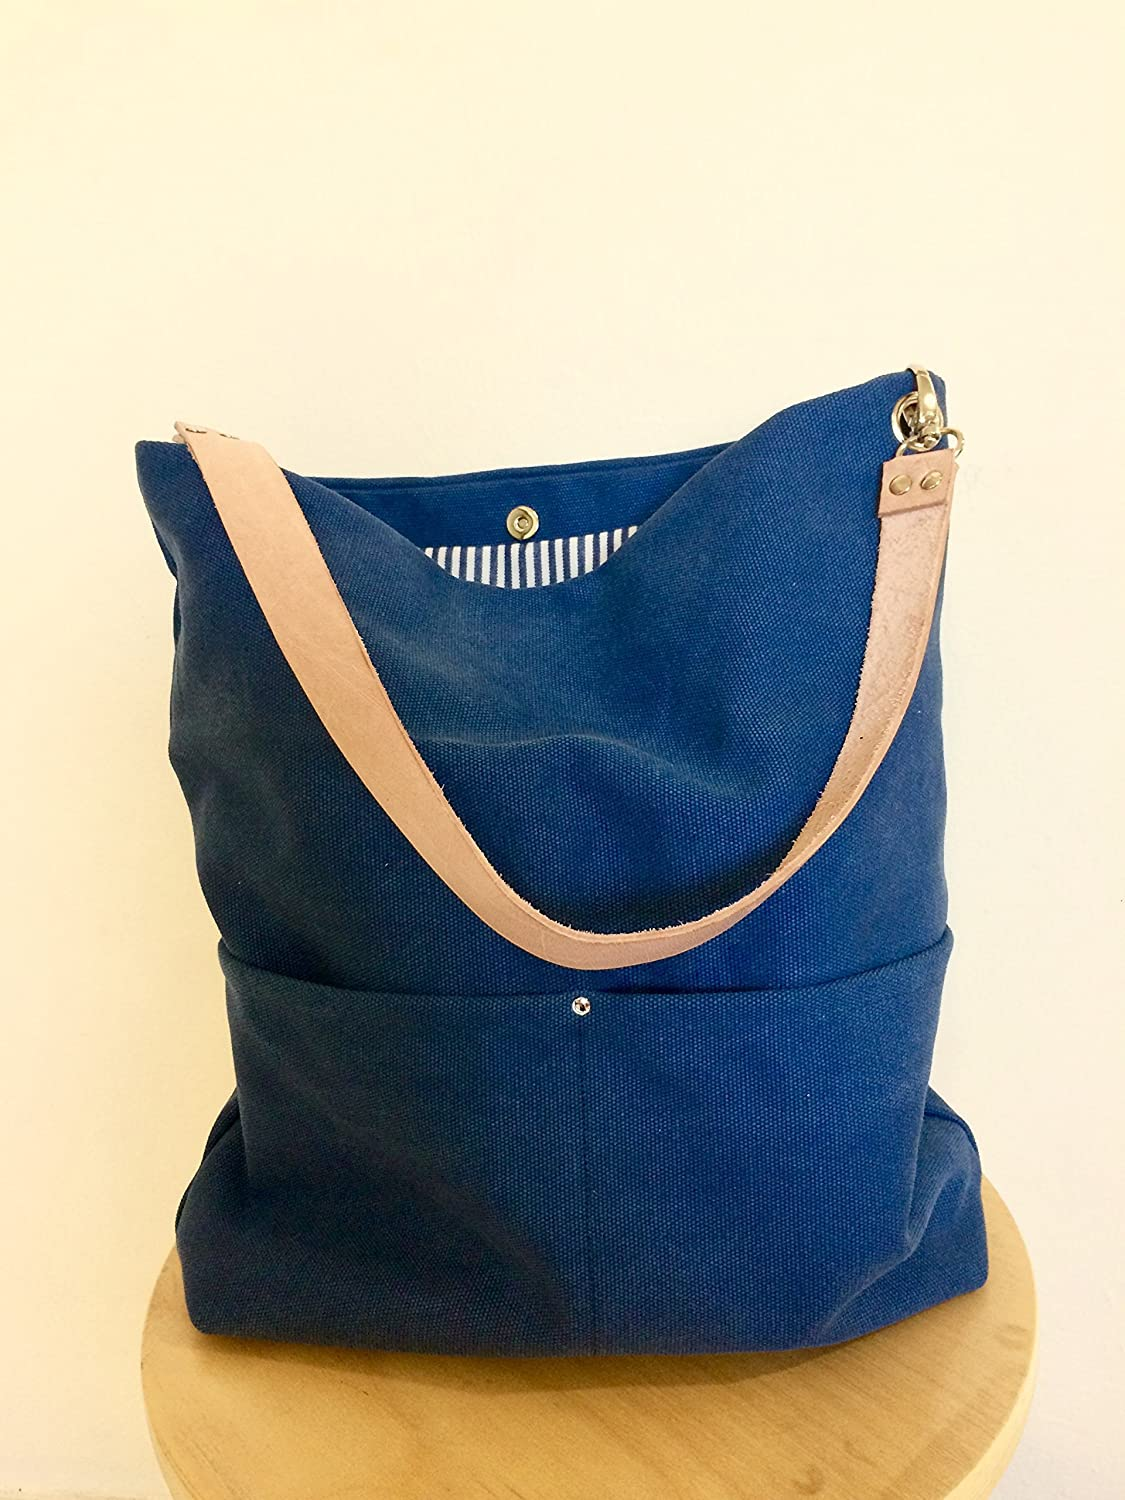 97e805646d Amazon.com  Blue Hobo Canvas Bag with Real Leather Strap